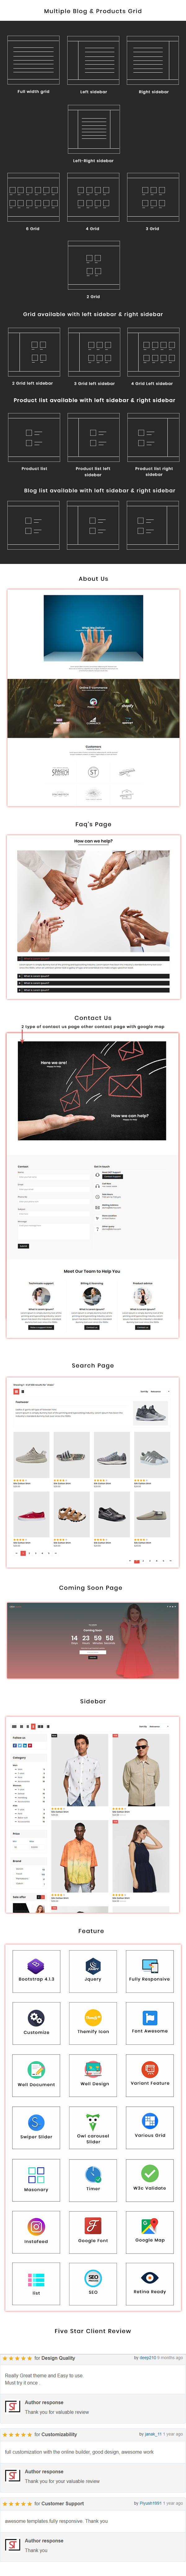 Libazz Fashion - Ecommerce  HTML5 Template - 4